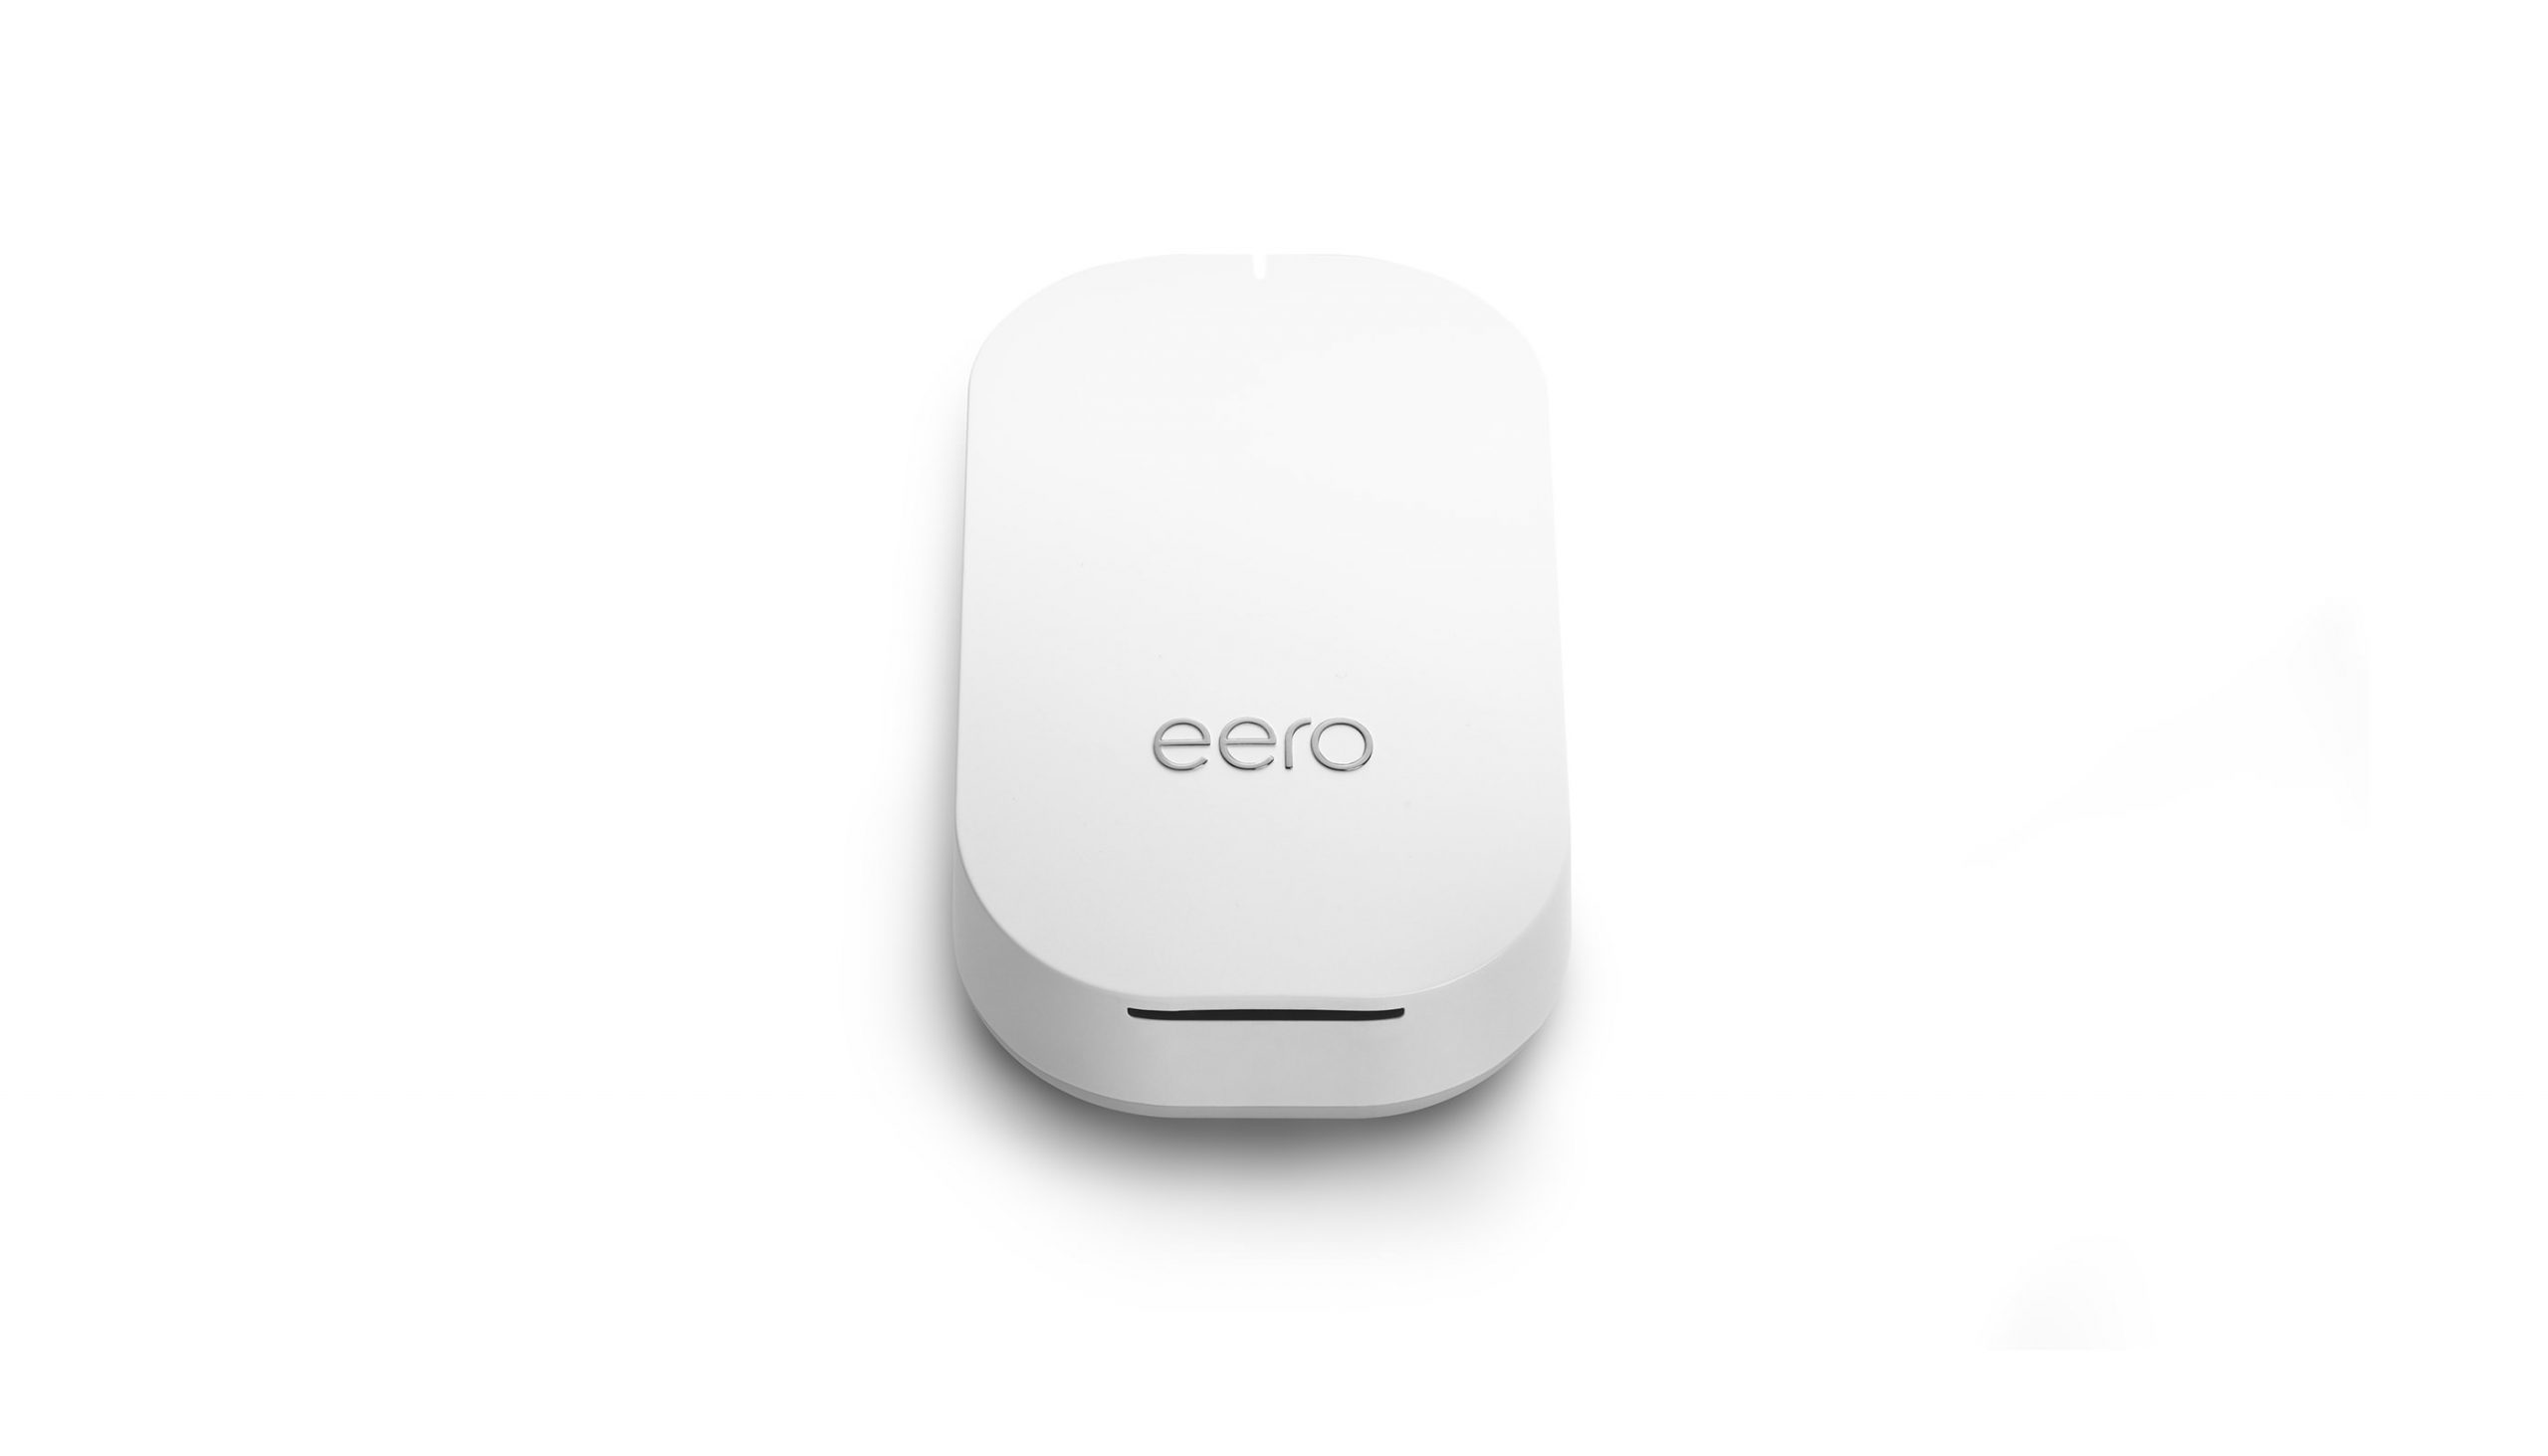 Picture of an Eero router